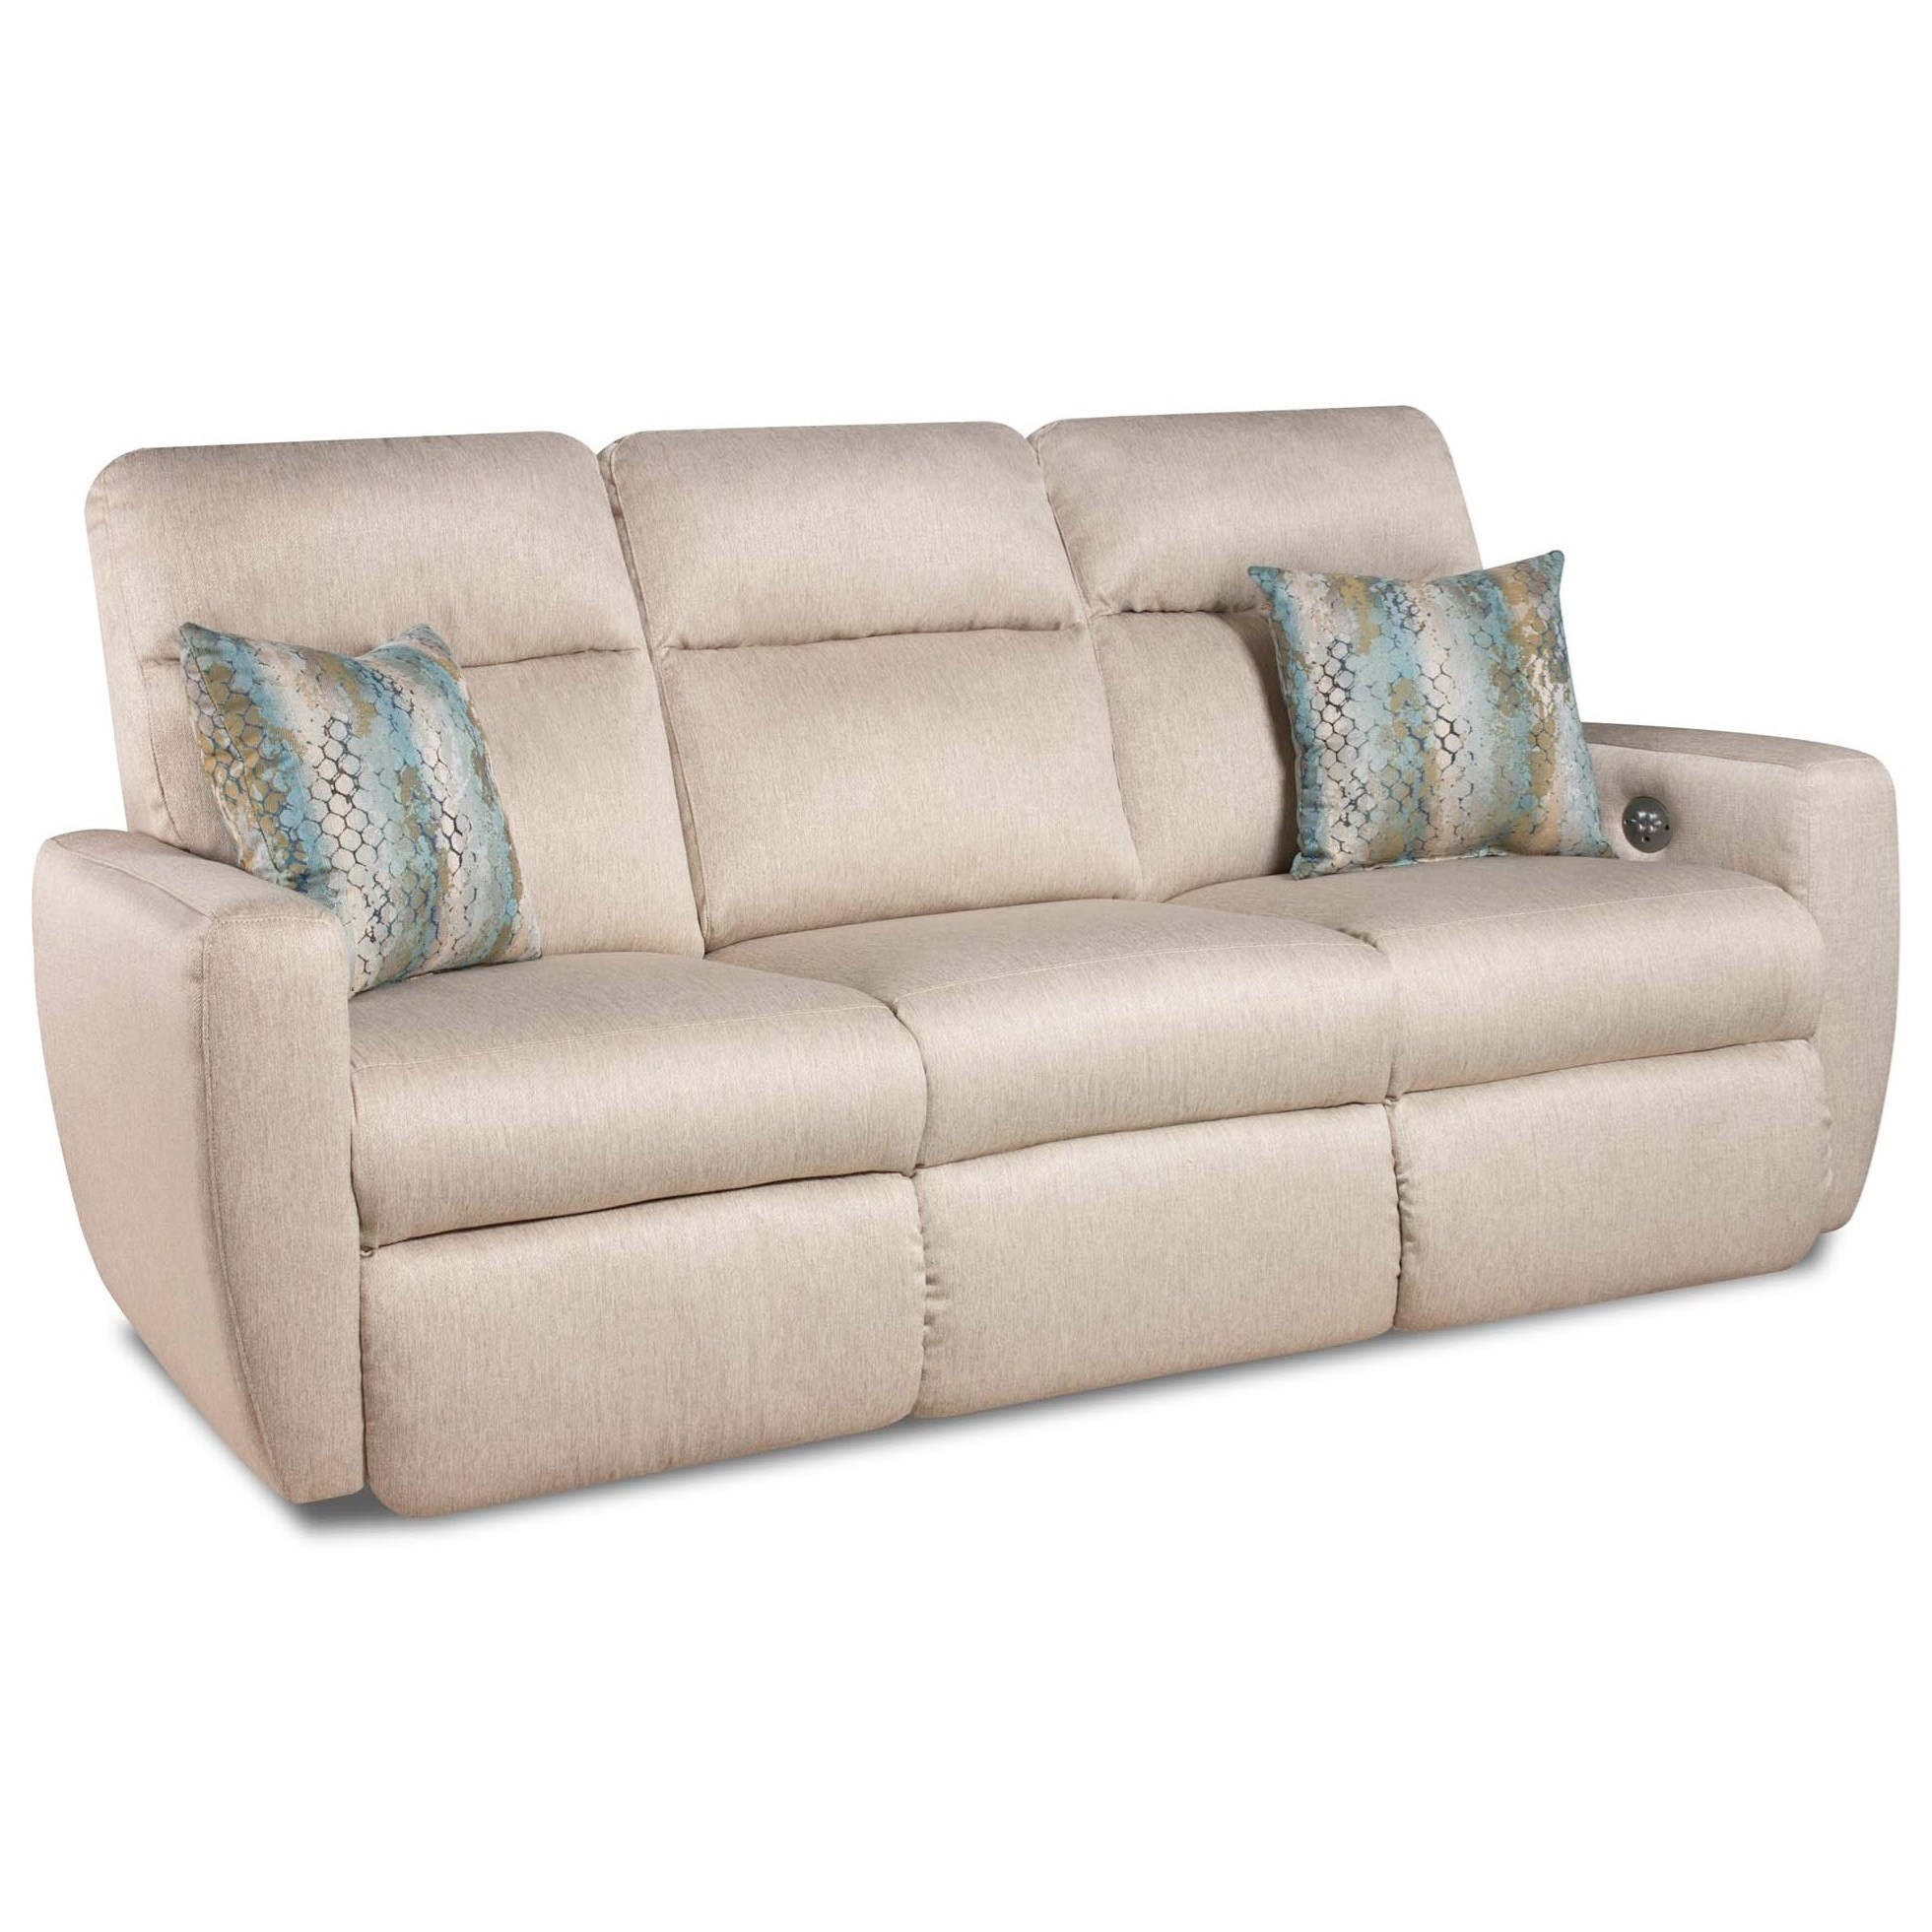 Southern Motion Knock Out Reclining Sofa with Pillows u0026 Power Headrest - Item Number 865  sc 1 st  Becker Furniture World & Southern Motion Knock Out Double Reclining Sofa with 2 Pillows and ... islam-shia.org